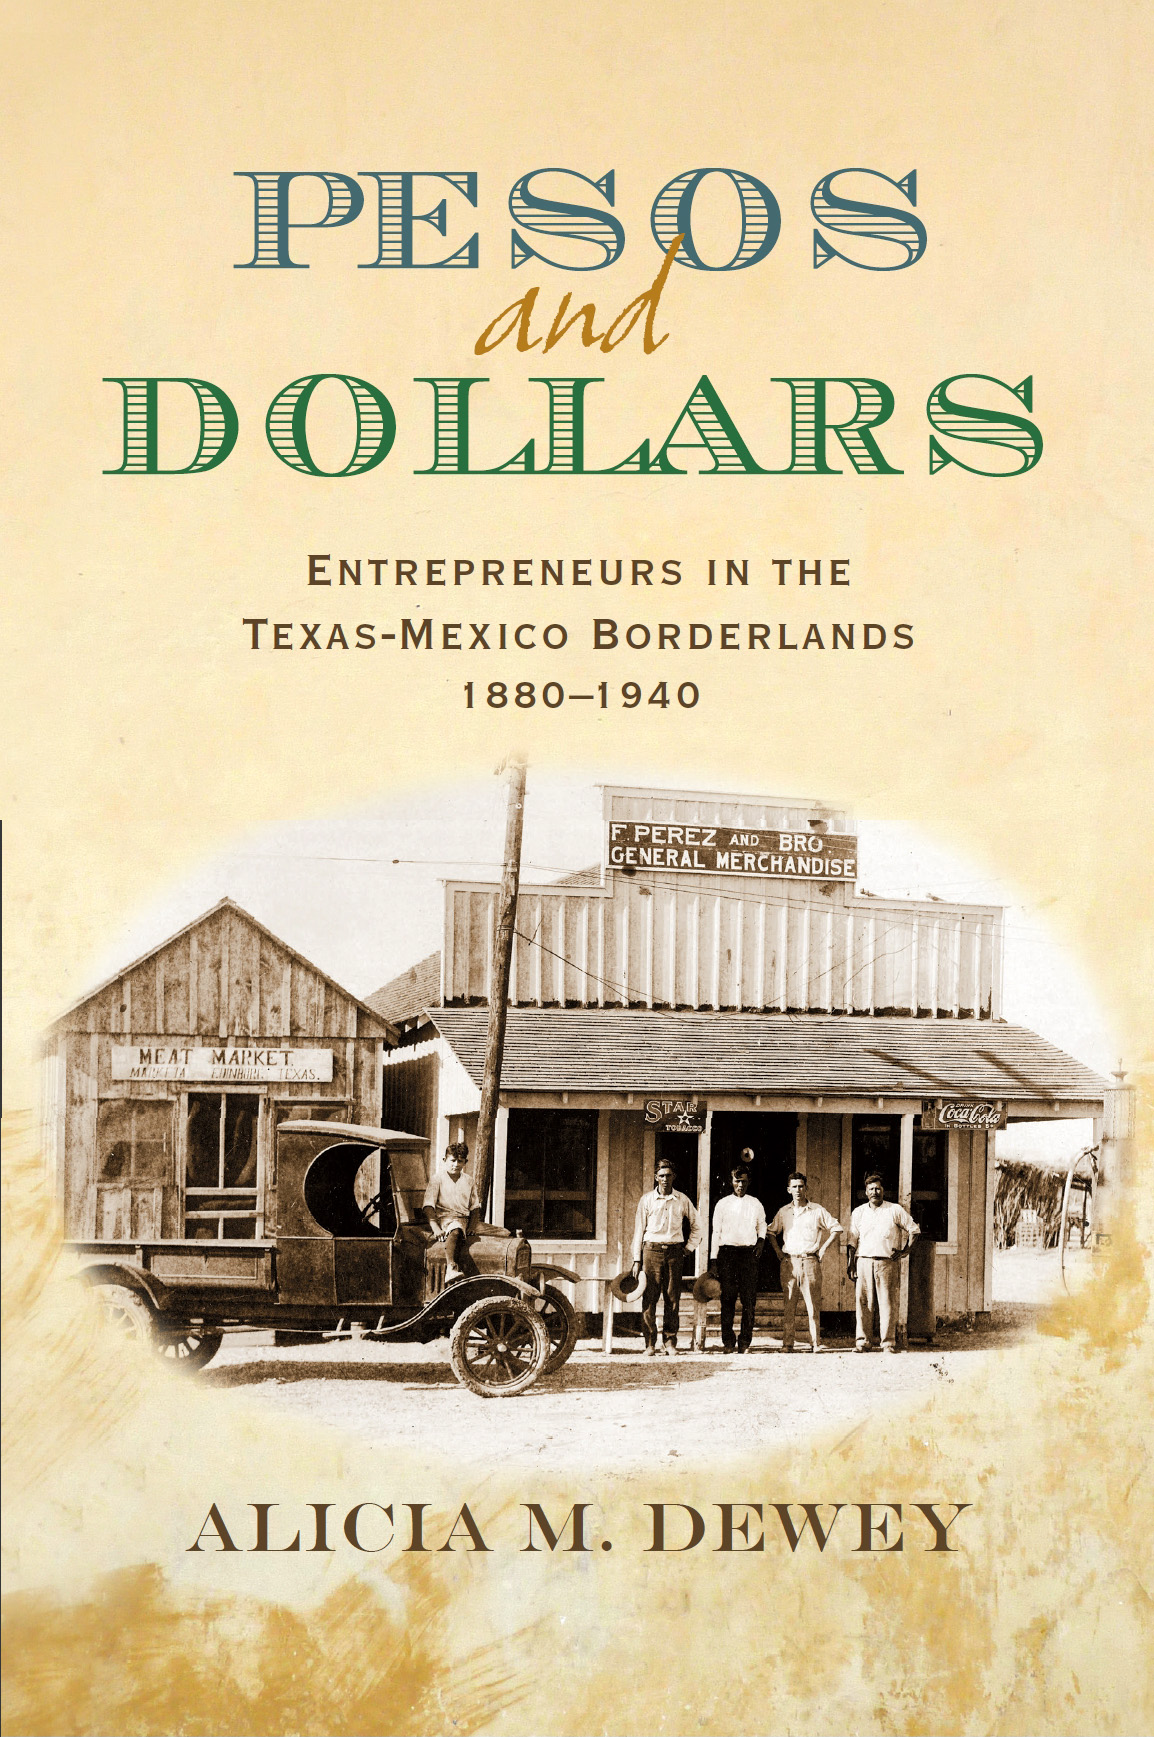 Pesos and Dollars: Entrepreneurs in the Texas-Mexico Borderlands